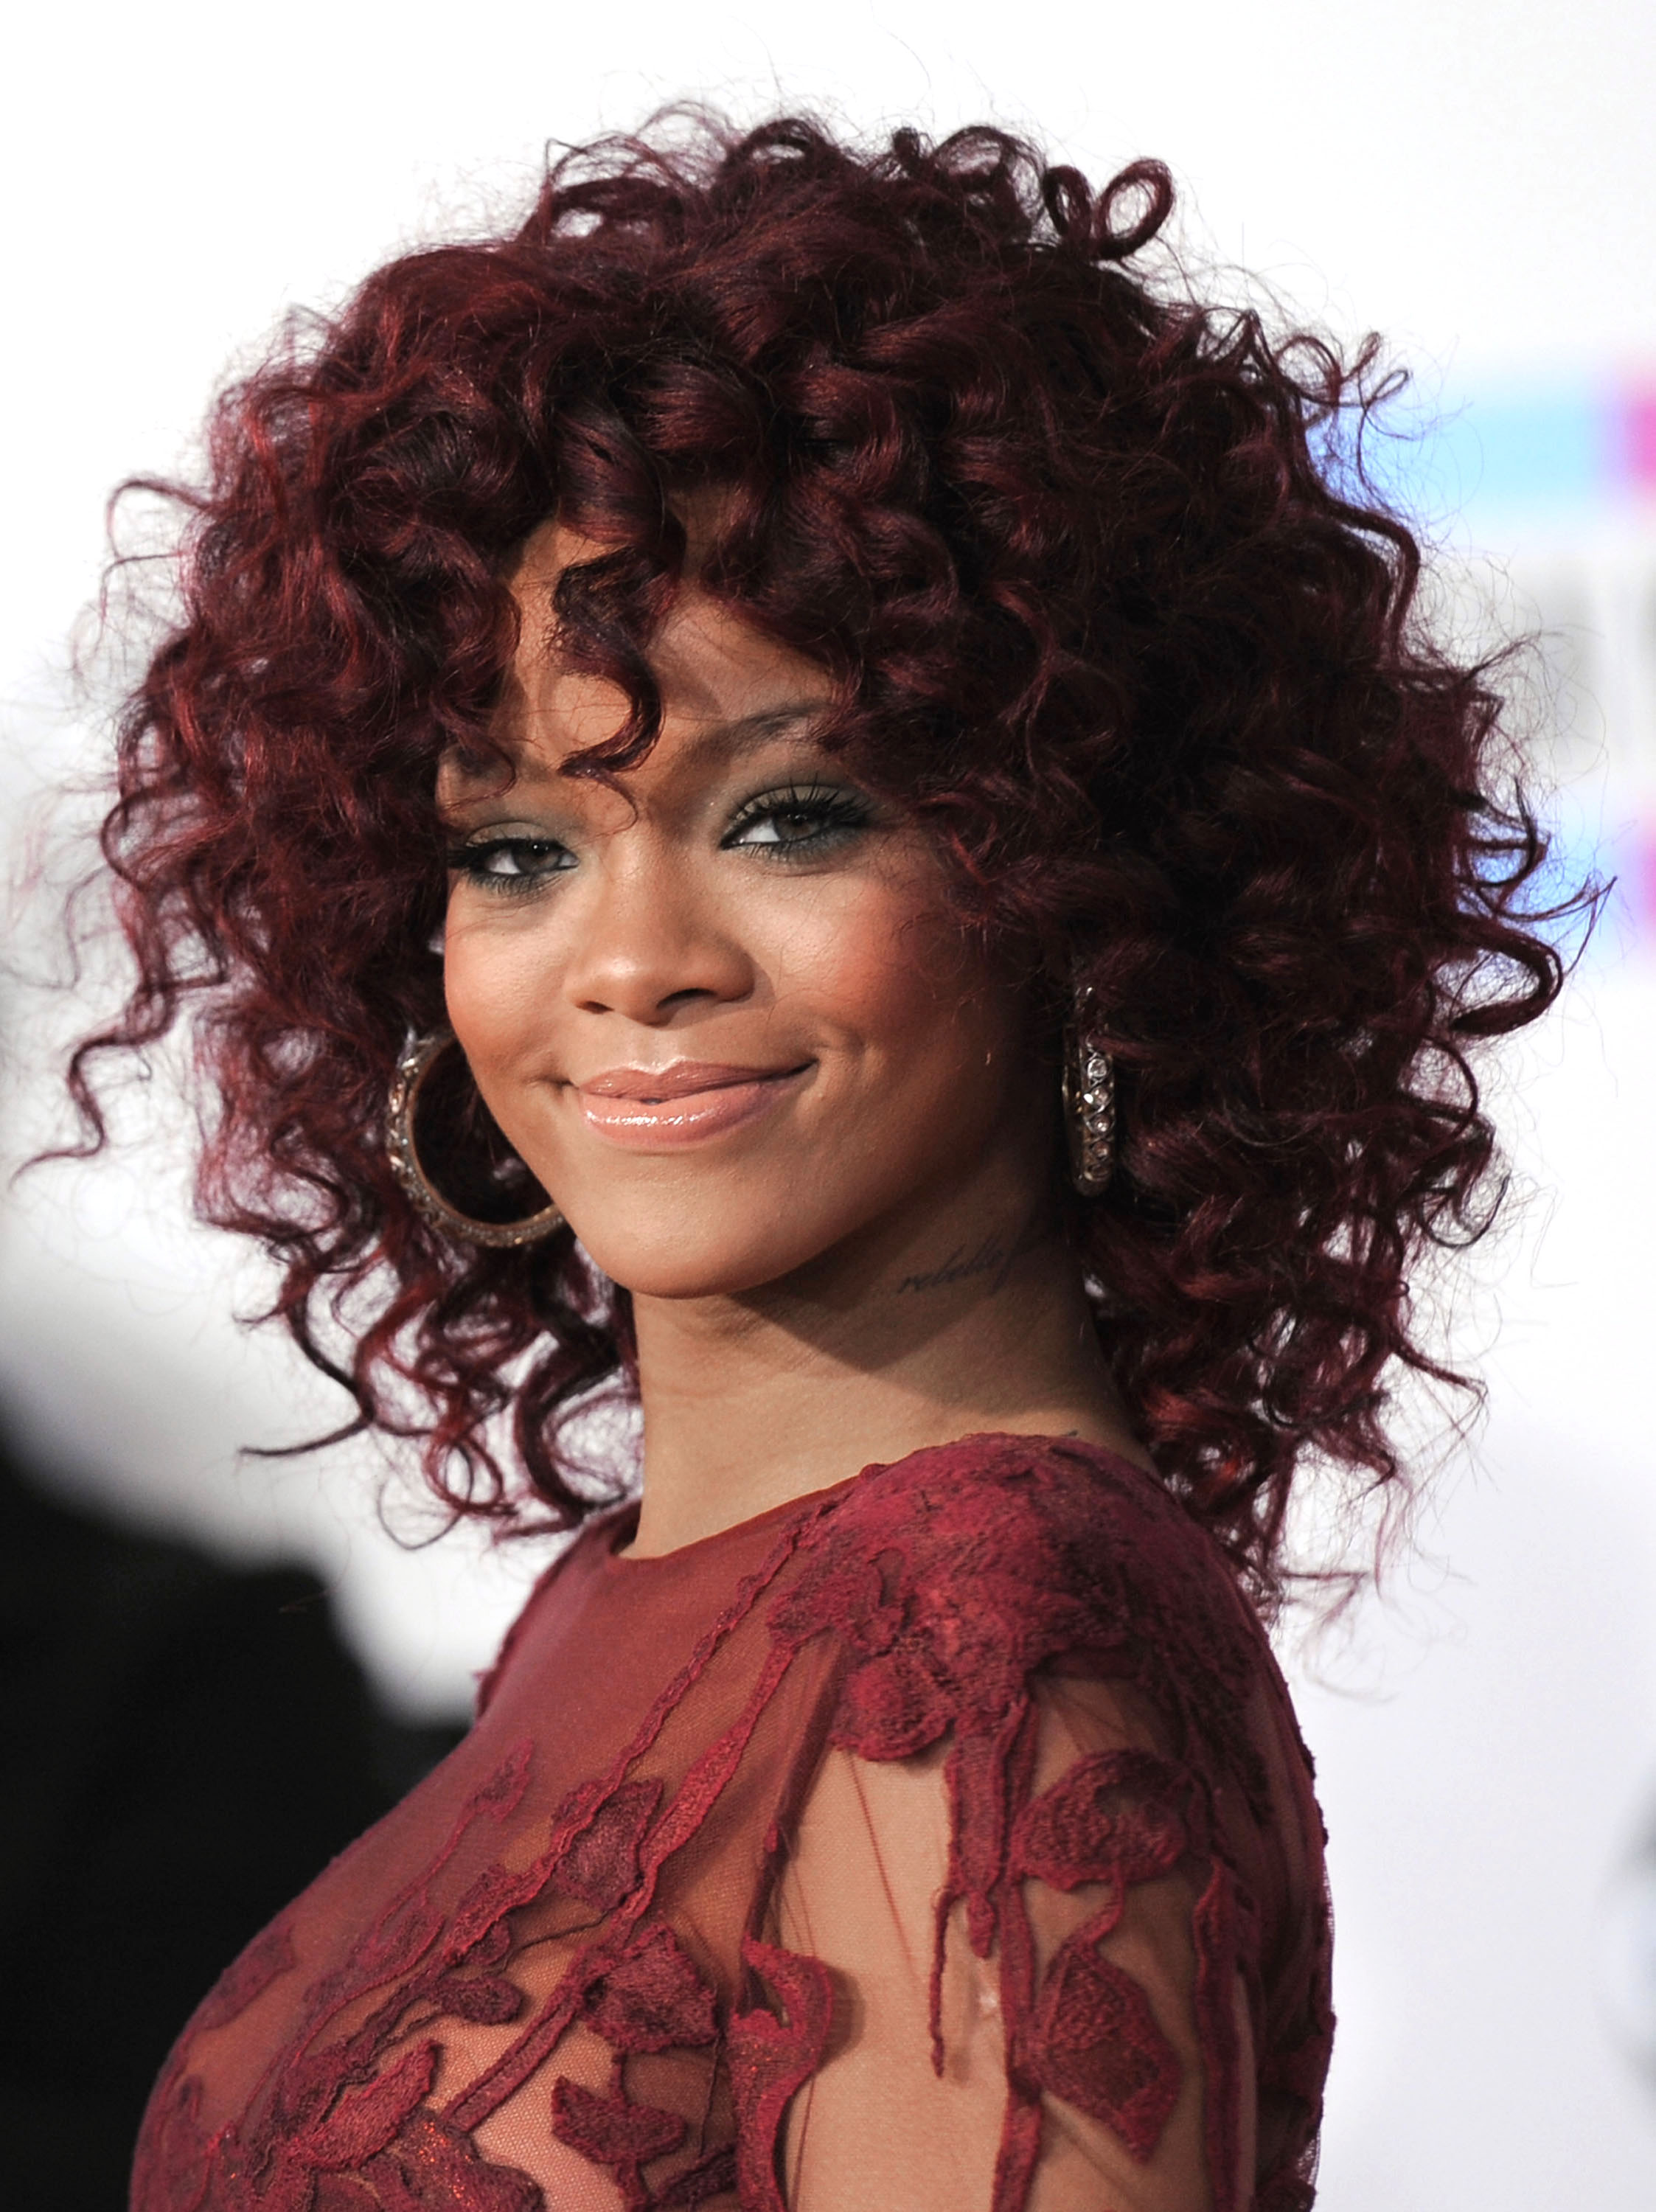 Best pictures of Rihanna